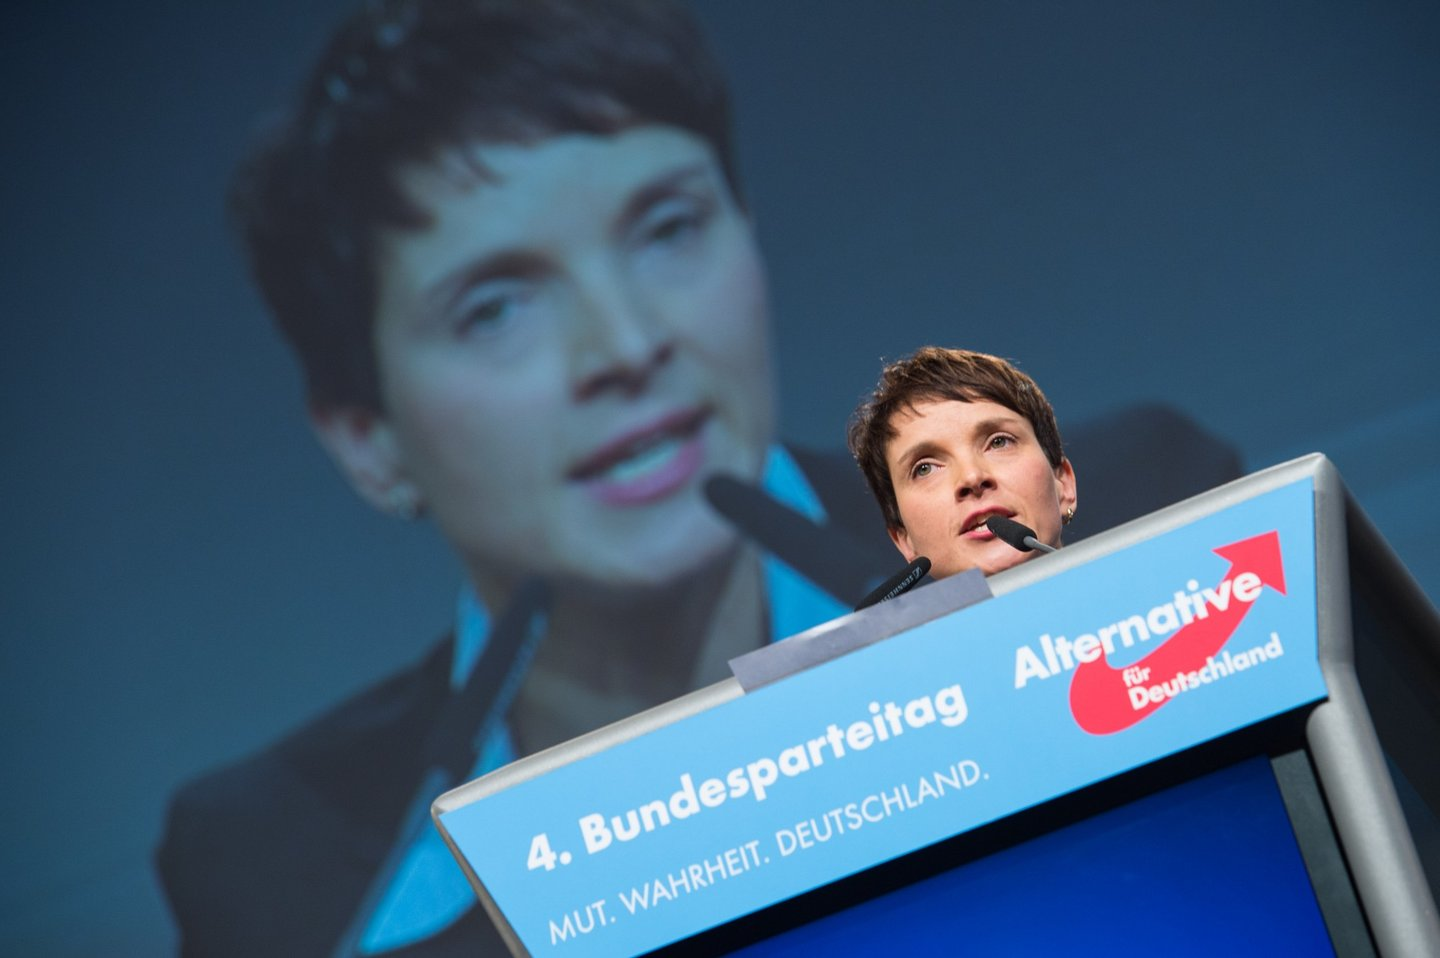 """HANOVER, GERMANY - NOVEMBER 28: Chairwoman Frauke Petry delivers her speech during the AfD (Alternative fuer Deutschland) federal party congress on November 28, 2015 in Hanover, Germany. The AFD aims to enter three new state parliaments in 2016 by luring conservative voters angry with Chancellor Angela Merkel's open-door asylum policy. This weekend the party will outline its plan to bring order to what it calls the """"asylum chaos."""" (Photo by Nigel Treblin/Getty Images)"""